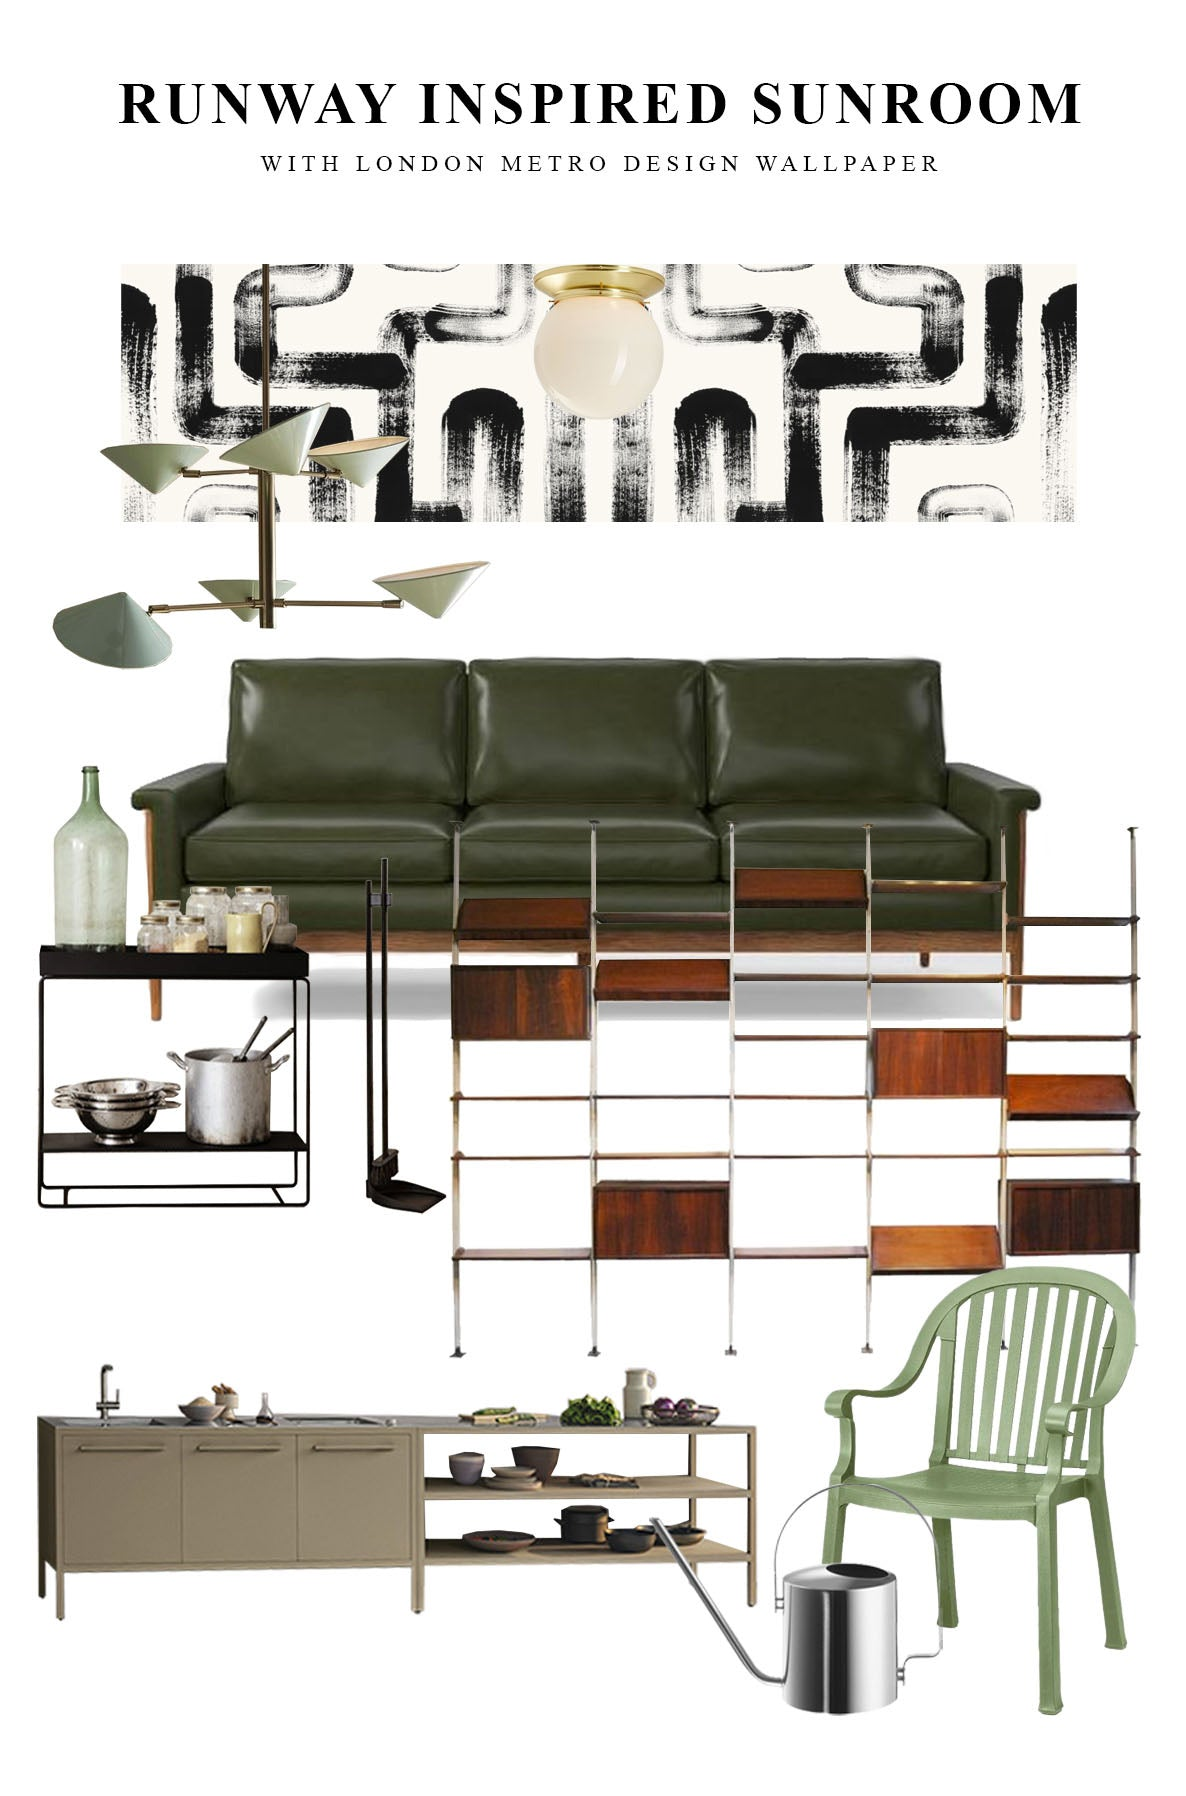 Modern sunroom design mood board with mid-century modern style home decor and removable wallpaper